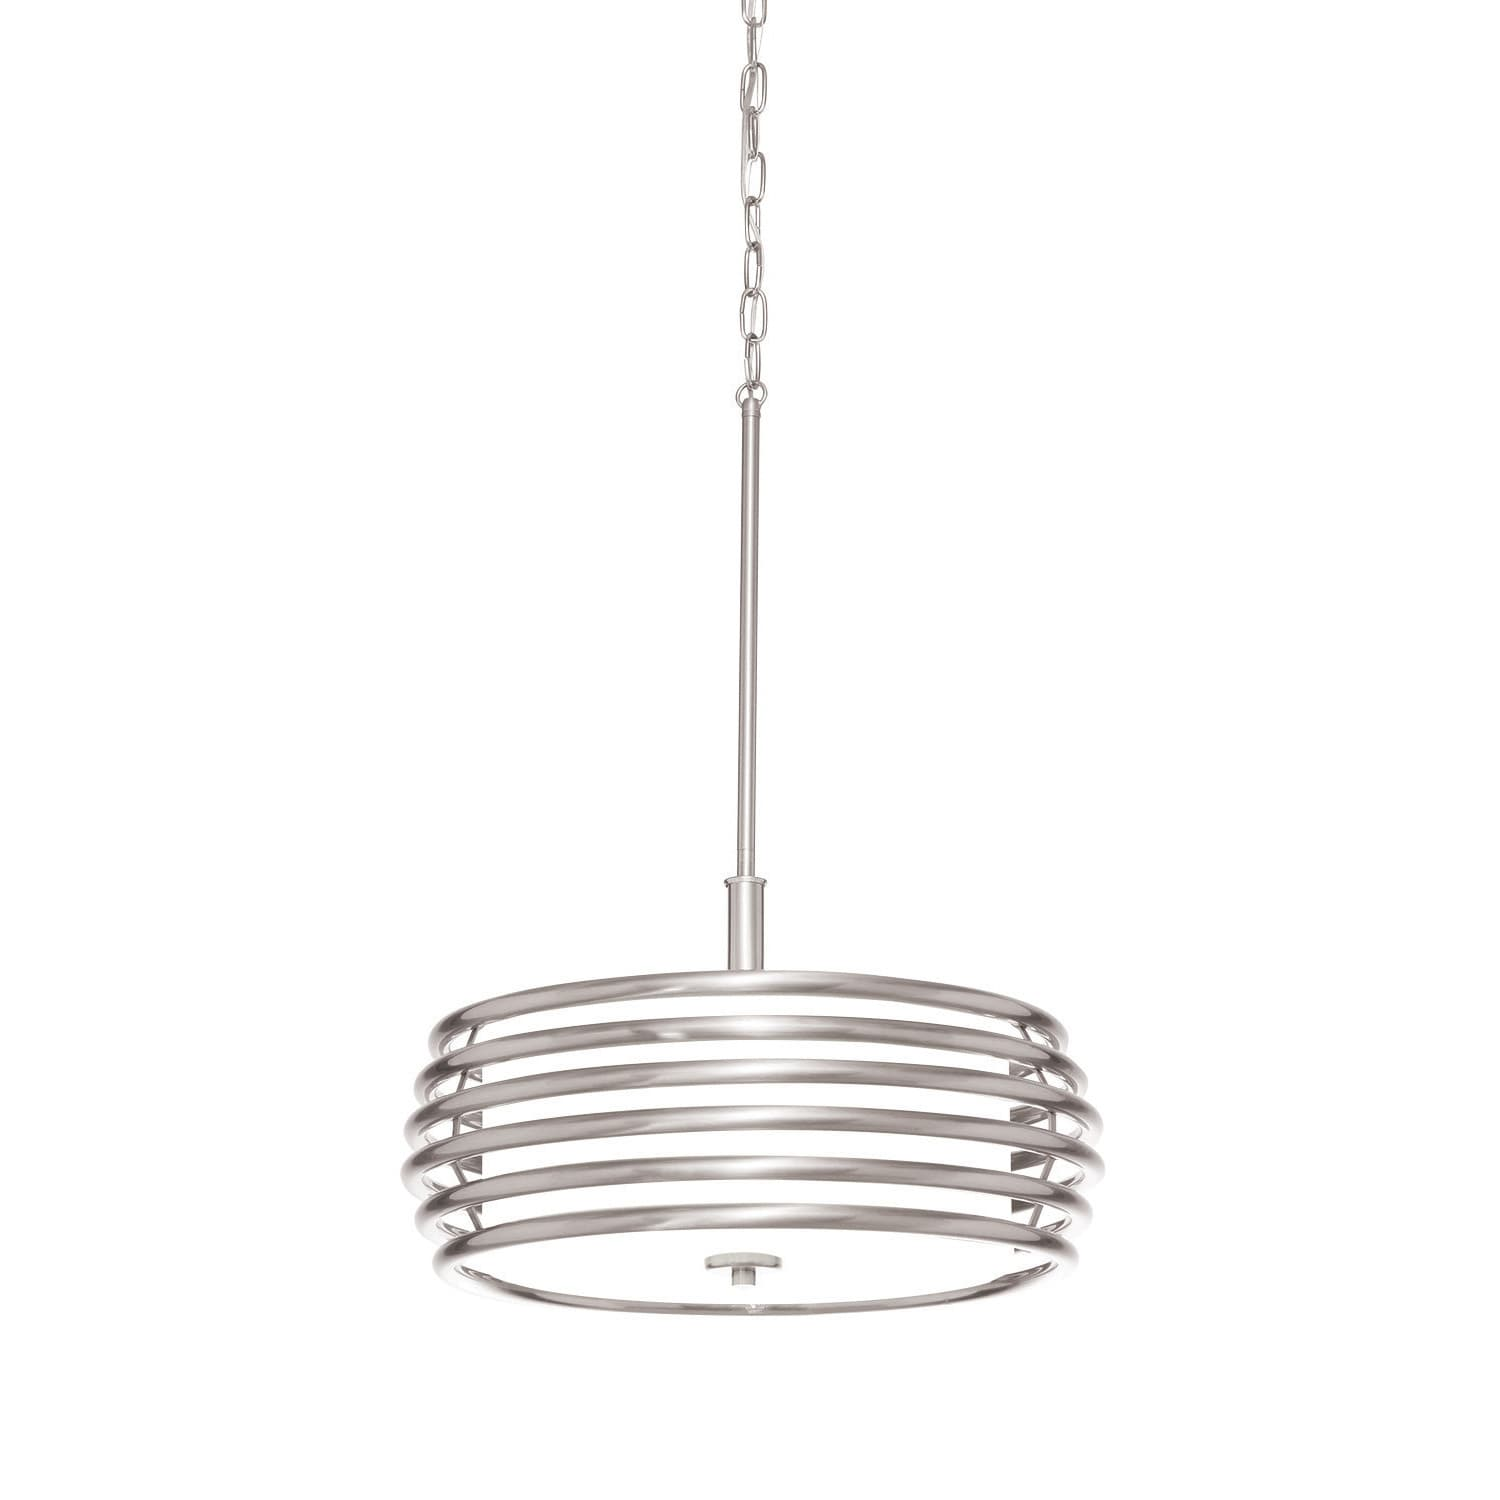 Aztec Lighting Contemporary 3 Light Brushed Nickel Pendant On Sale Overstock 18062854